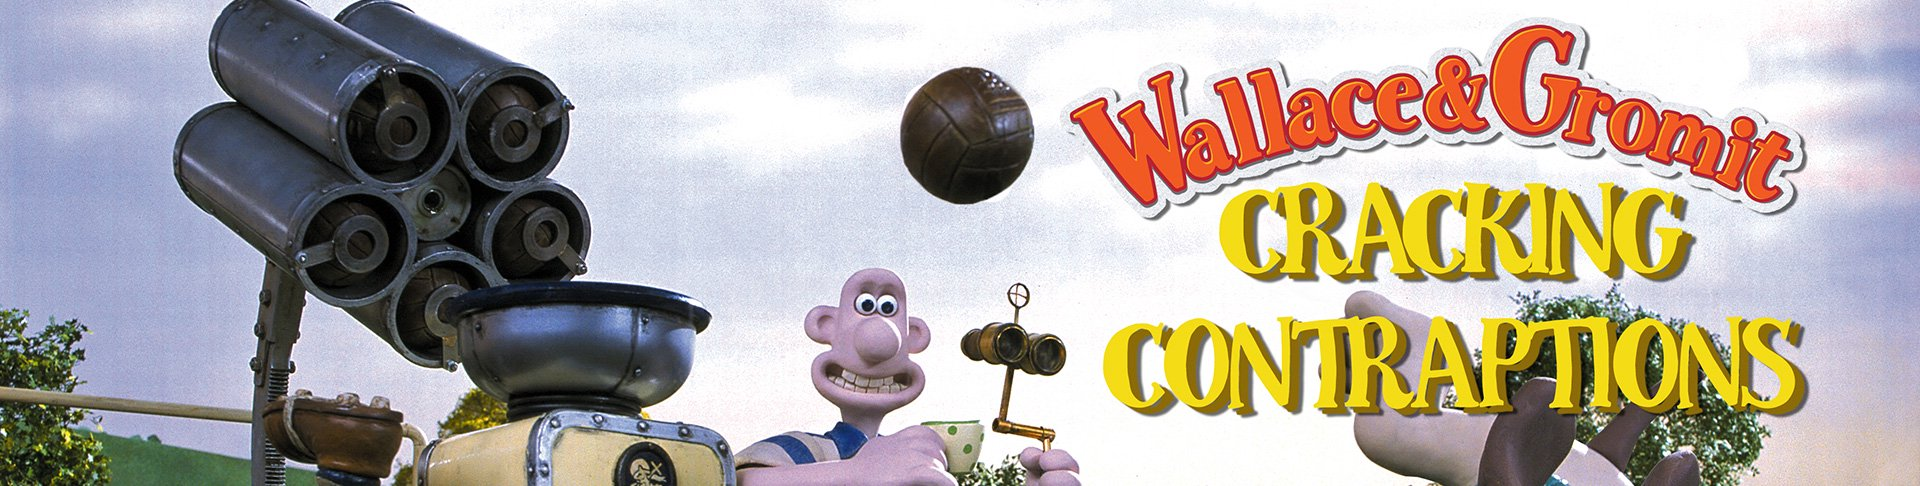 Wallace and Gromit: Cracking Contraptions